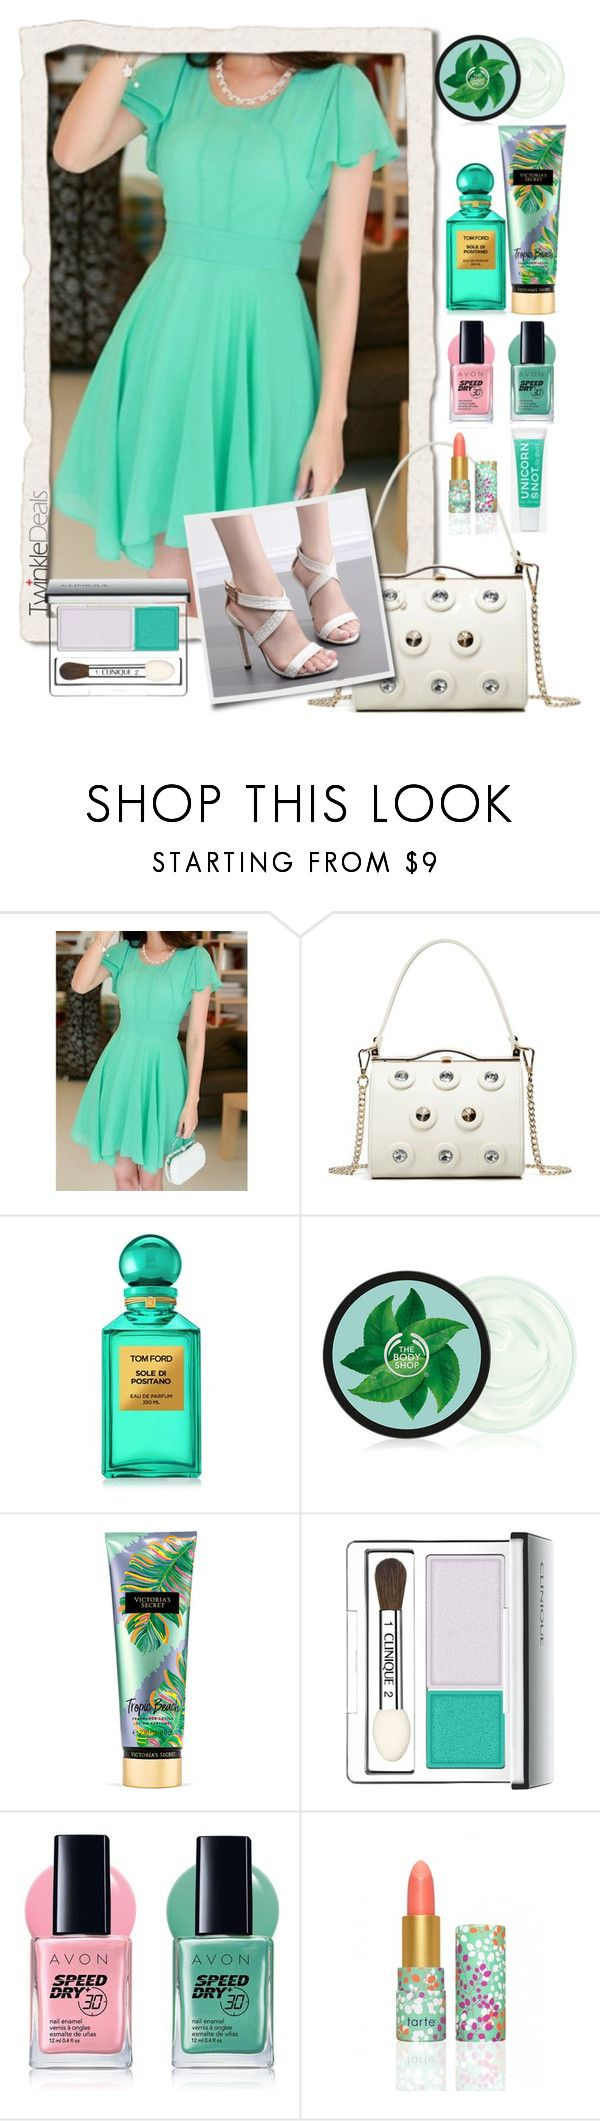 """dress by twinkledeals"" by teto000 ❤ liked on Polyvore featuring Tom Ford, Victoria's Secret, Clinique and Avon"